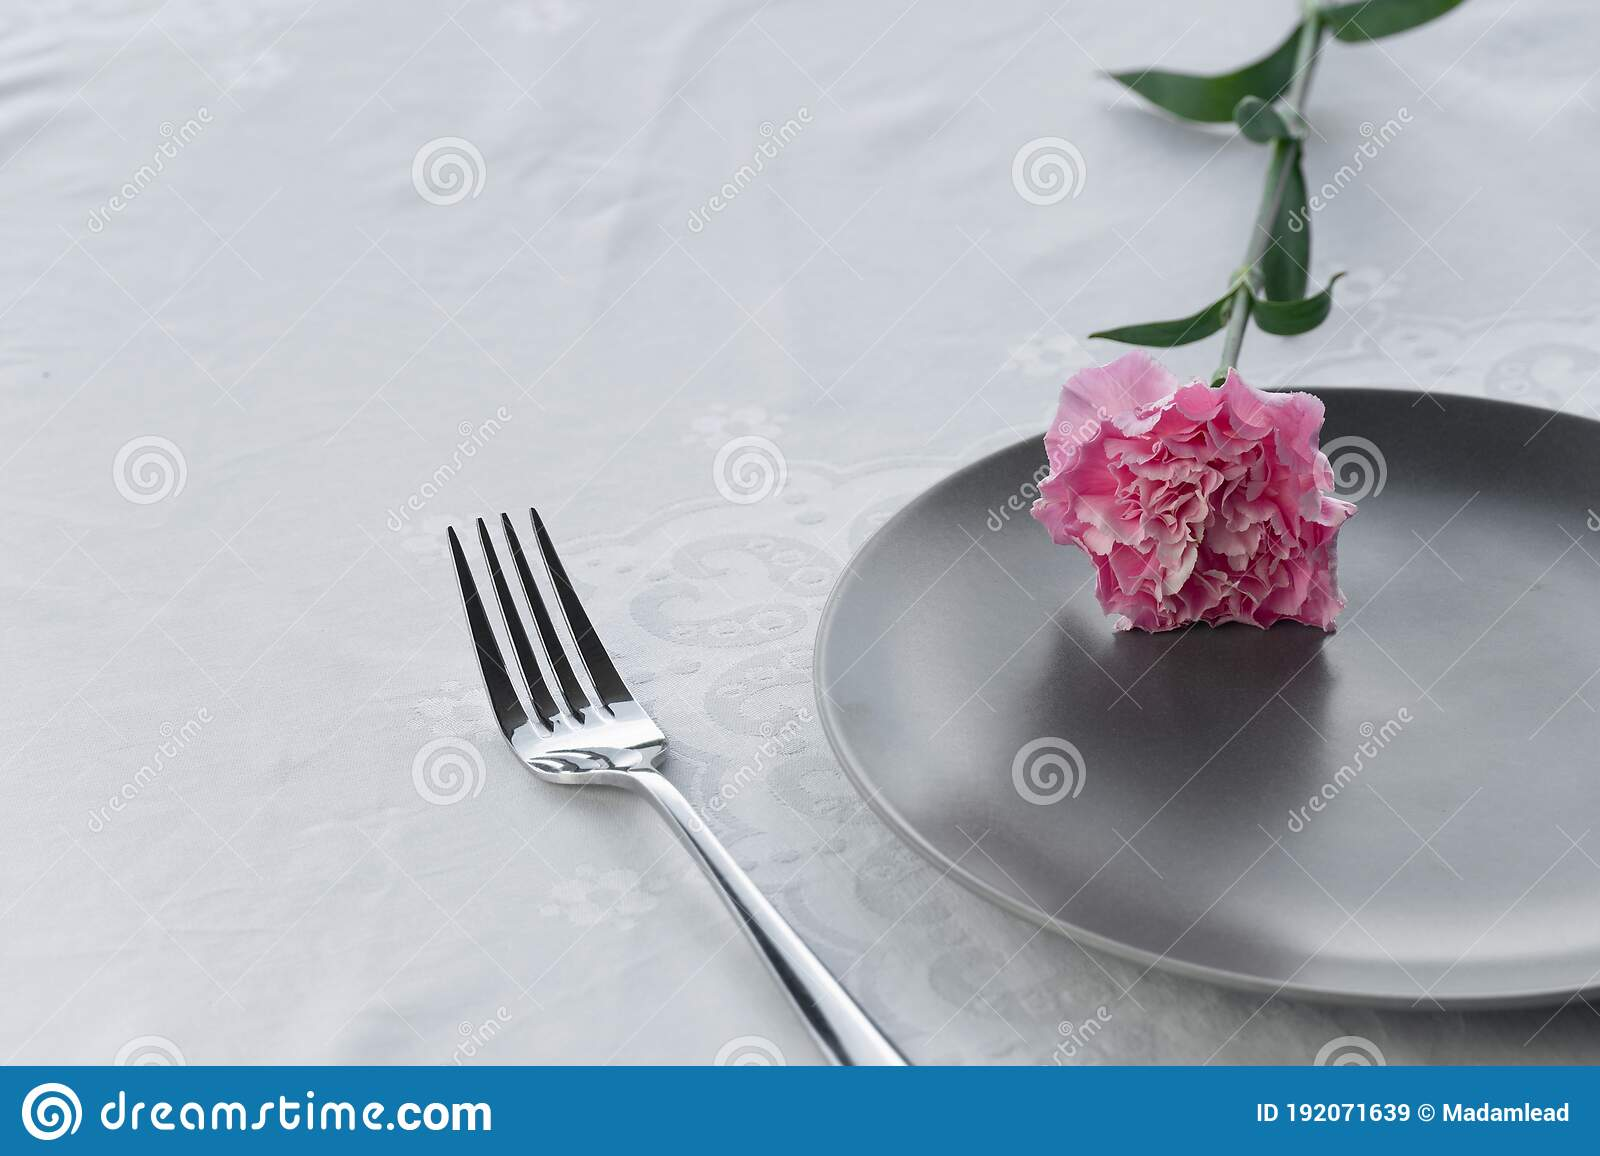 Dark Grey Plate With Pink Carnation Flower For Food Restaurant Service Background Stock Image Image Of Bright Lunch 192071639